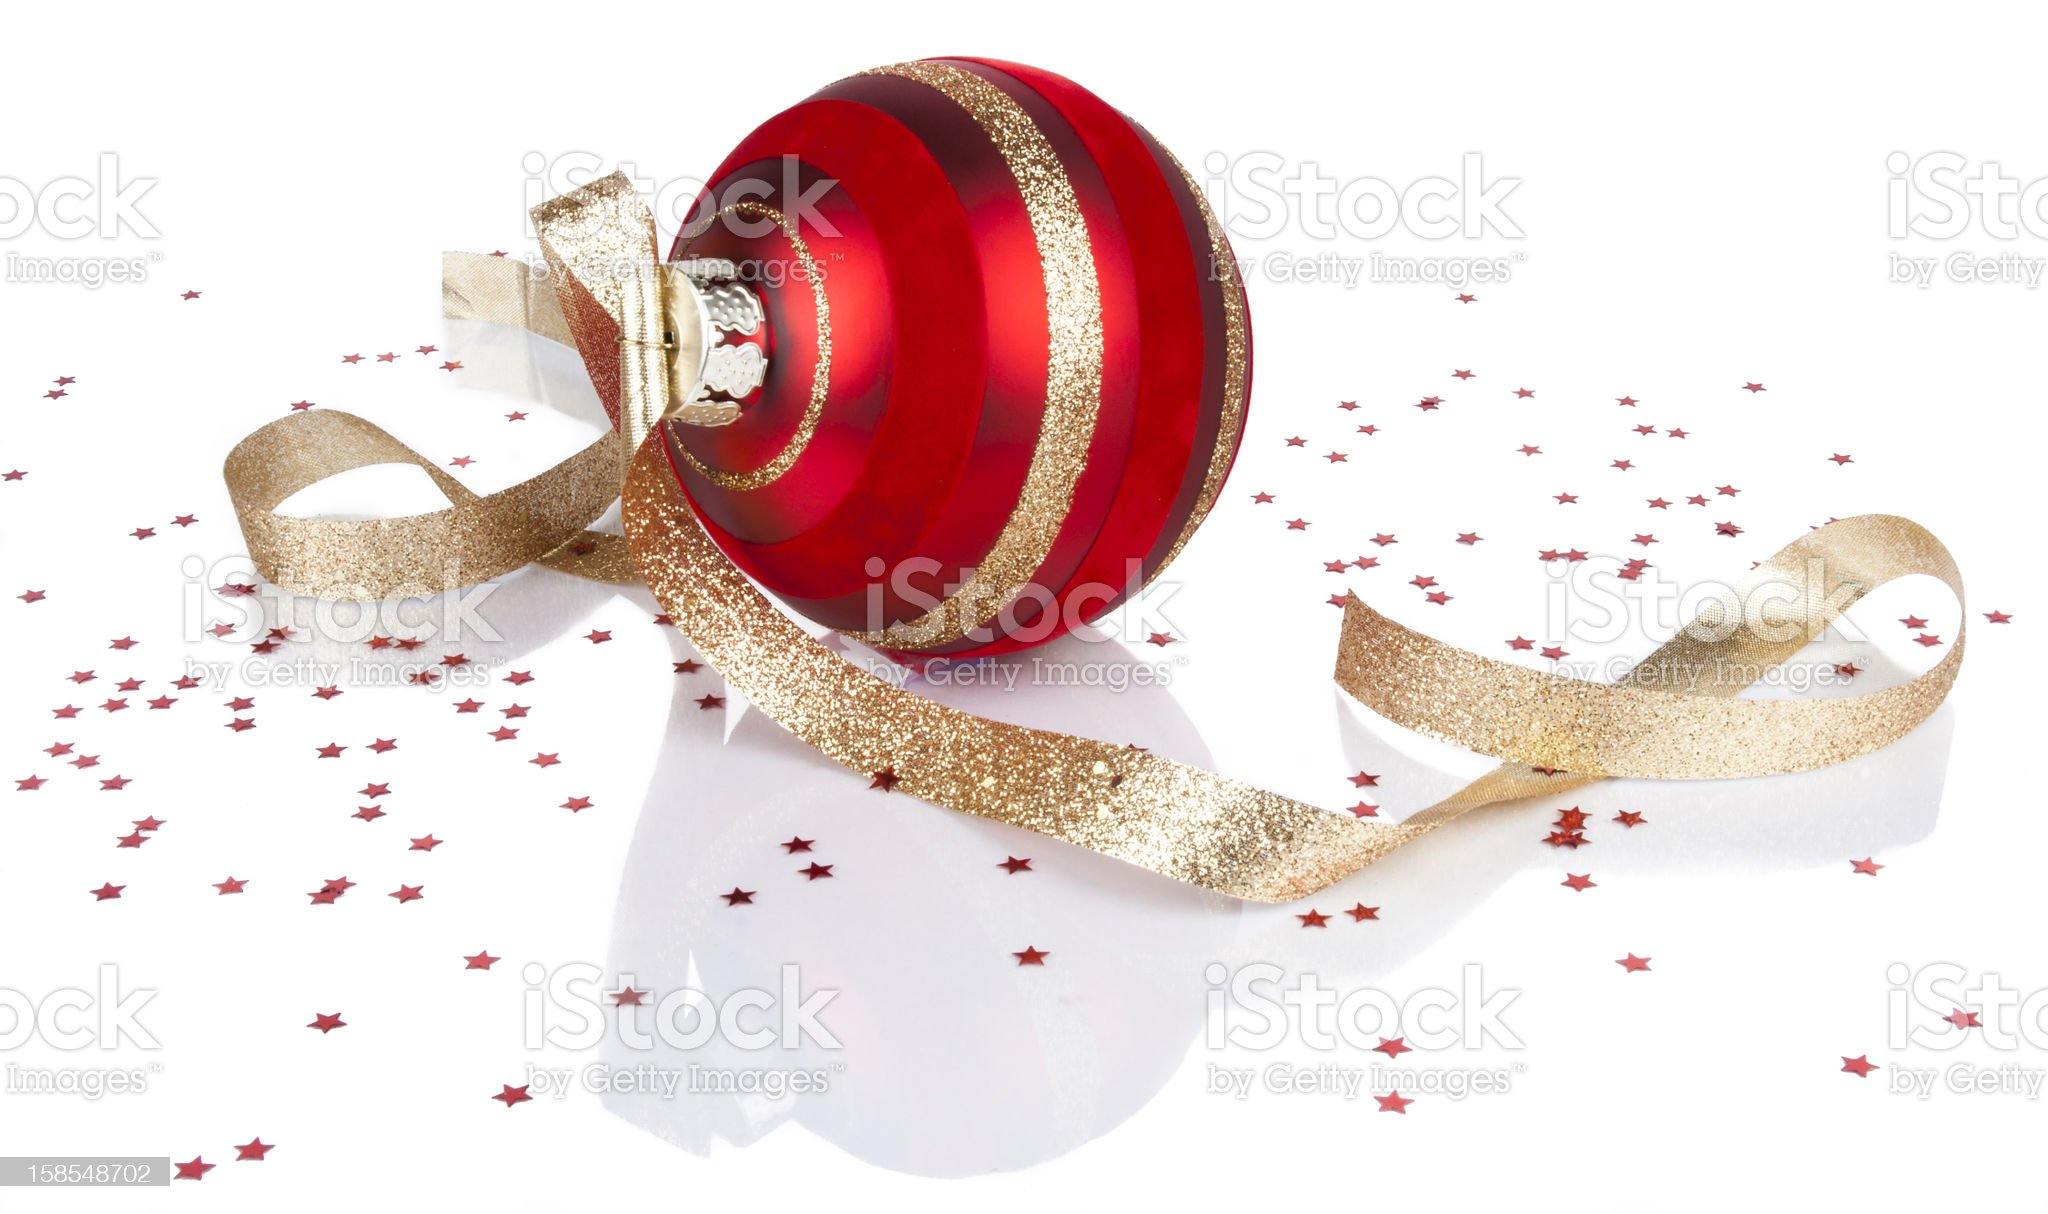 Christmas ornament with reflection isolated on white royalty-free stock photo